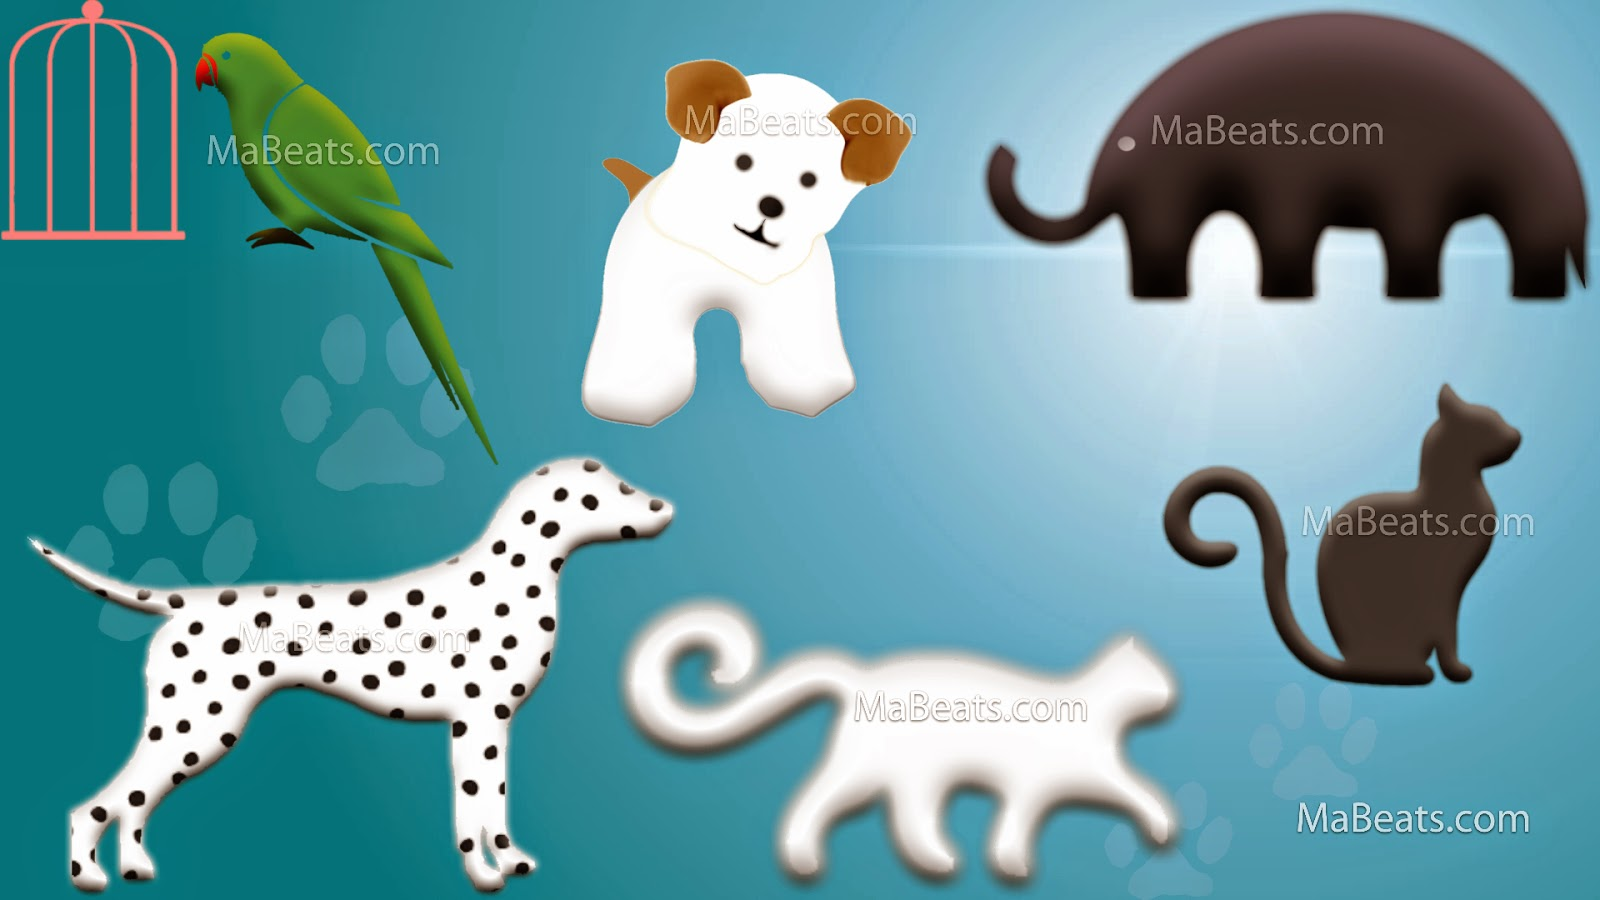 Survival of the smartest - Being pet, pet background,  cat, dog,Parrot, elephant, dalmatian,